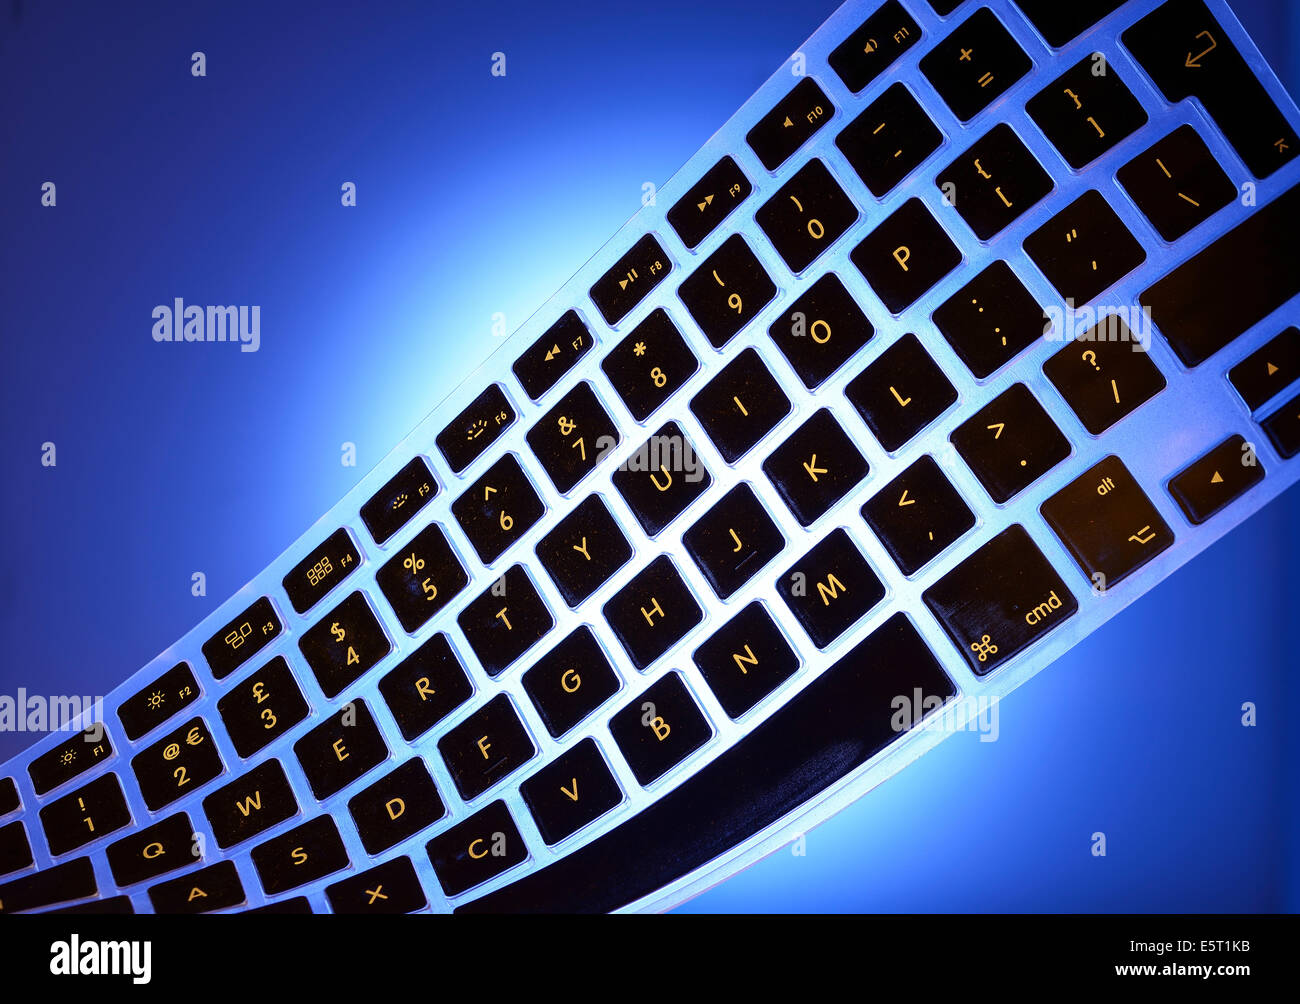 Flexible computer keyboard - Stock Image